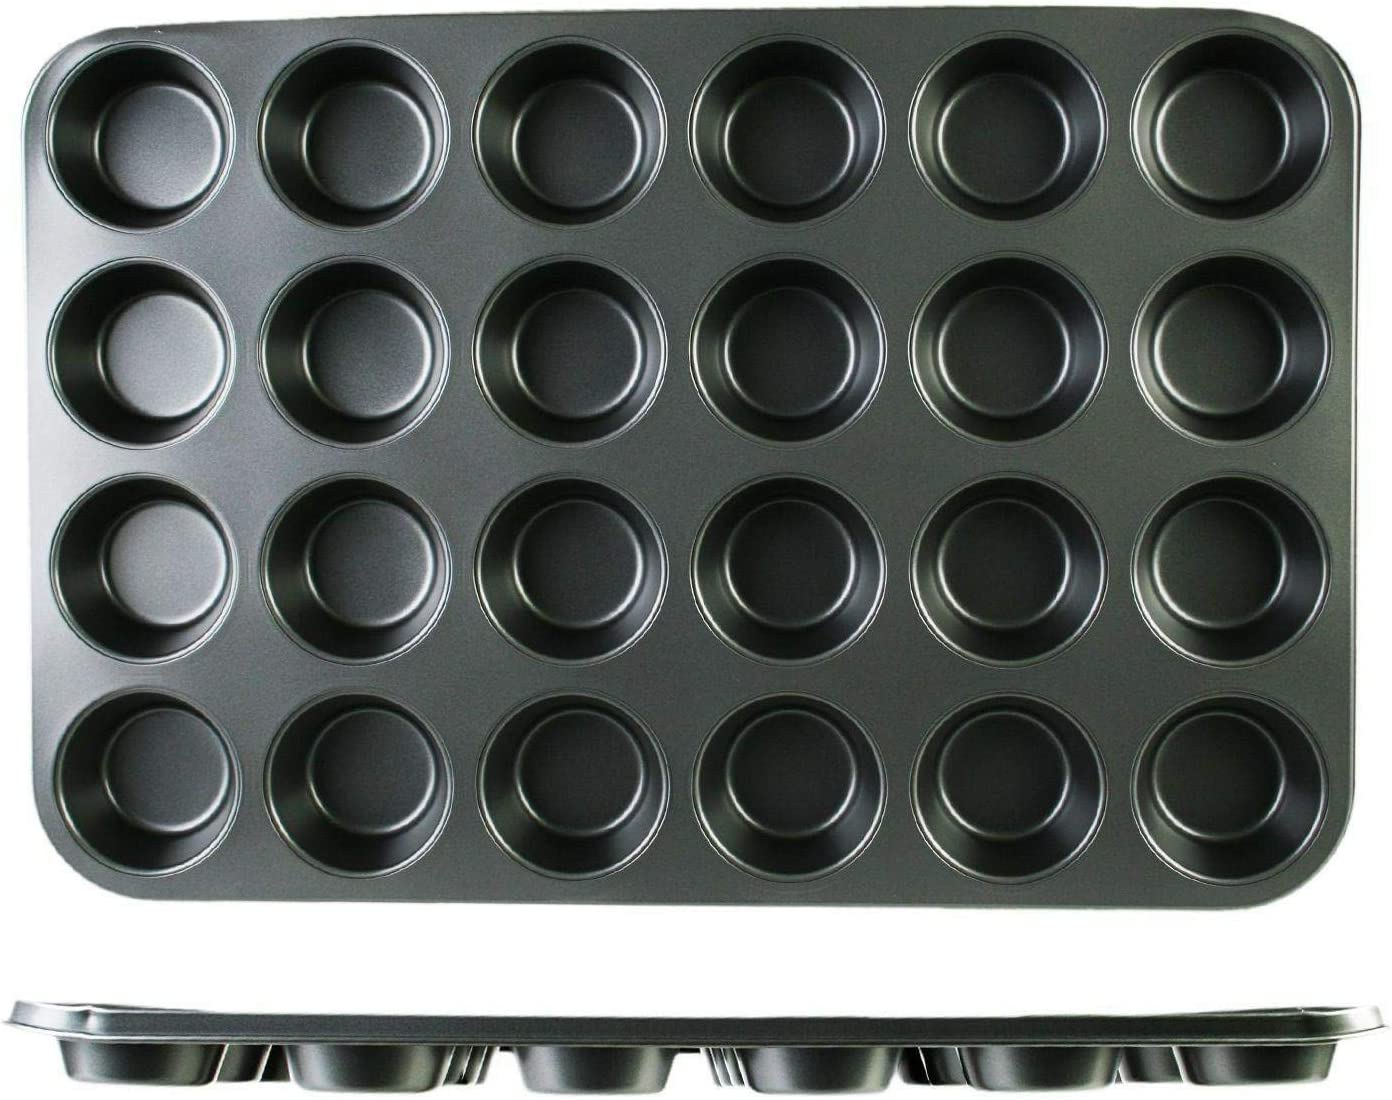 security Nonstick Muffin Pan 24 Standard Cupcake Baking Stainless Cups Ranking TOP13 3